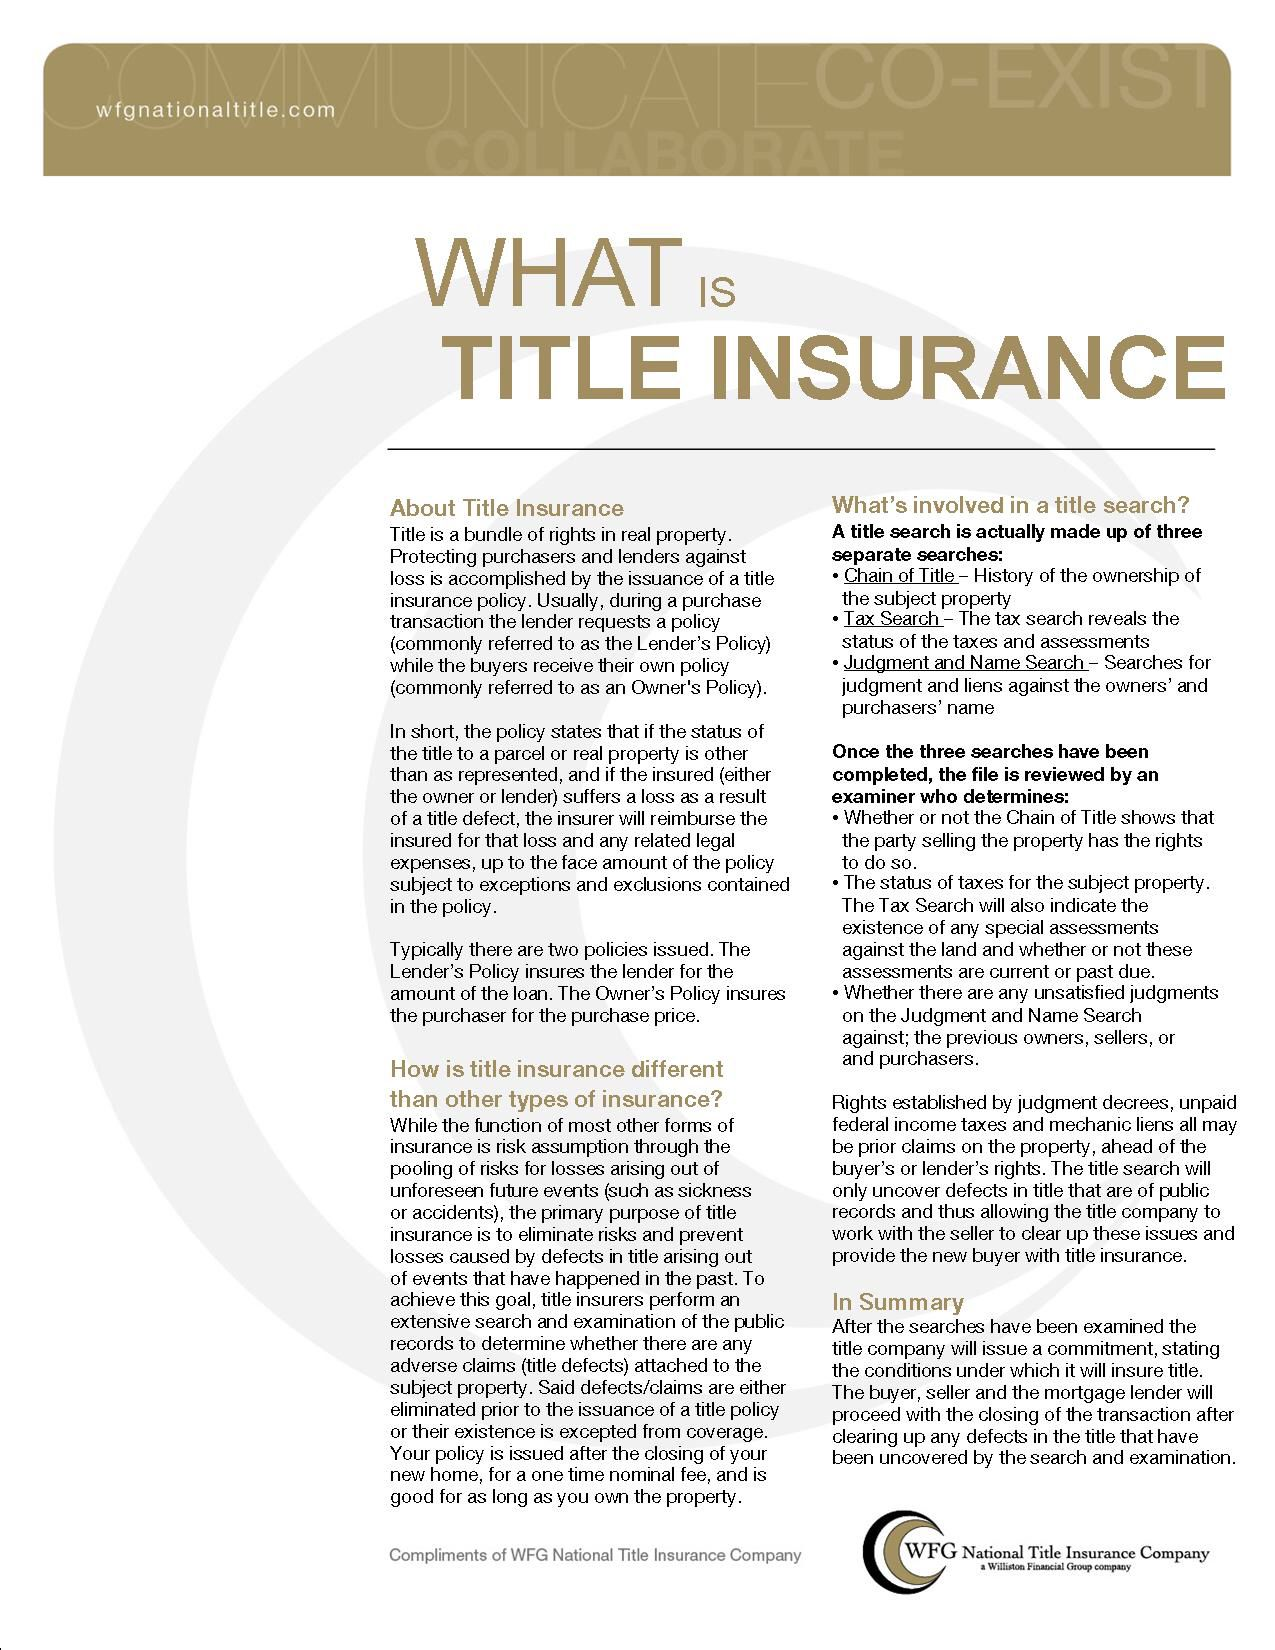 What Is Title Insurance With Images Title Insurance Best Mortgage Rates Today Business Insurance